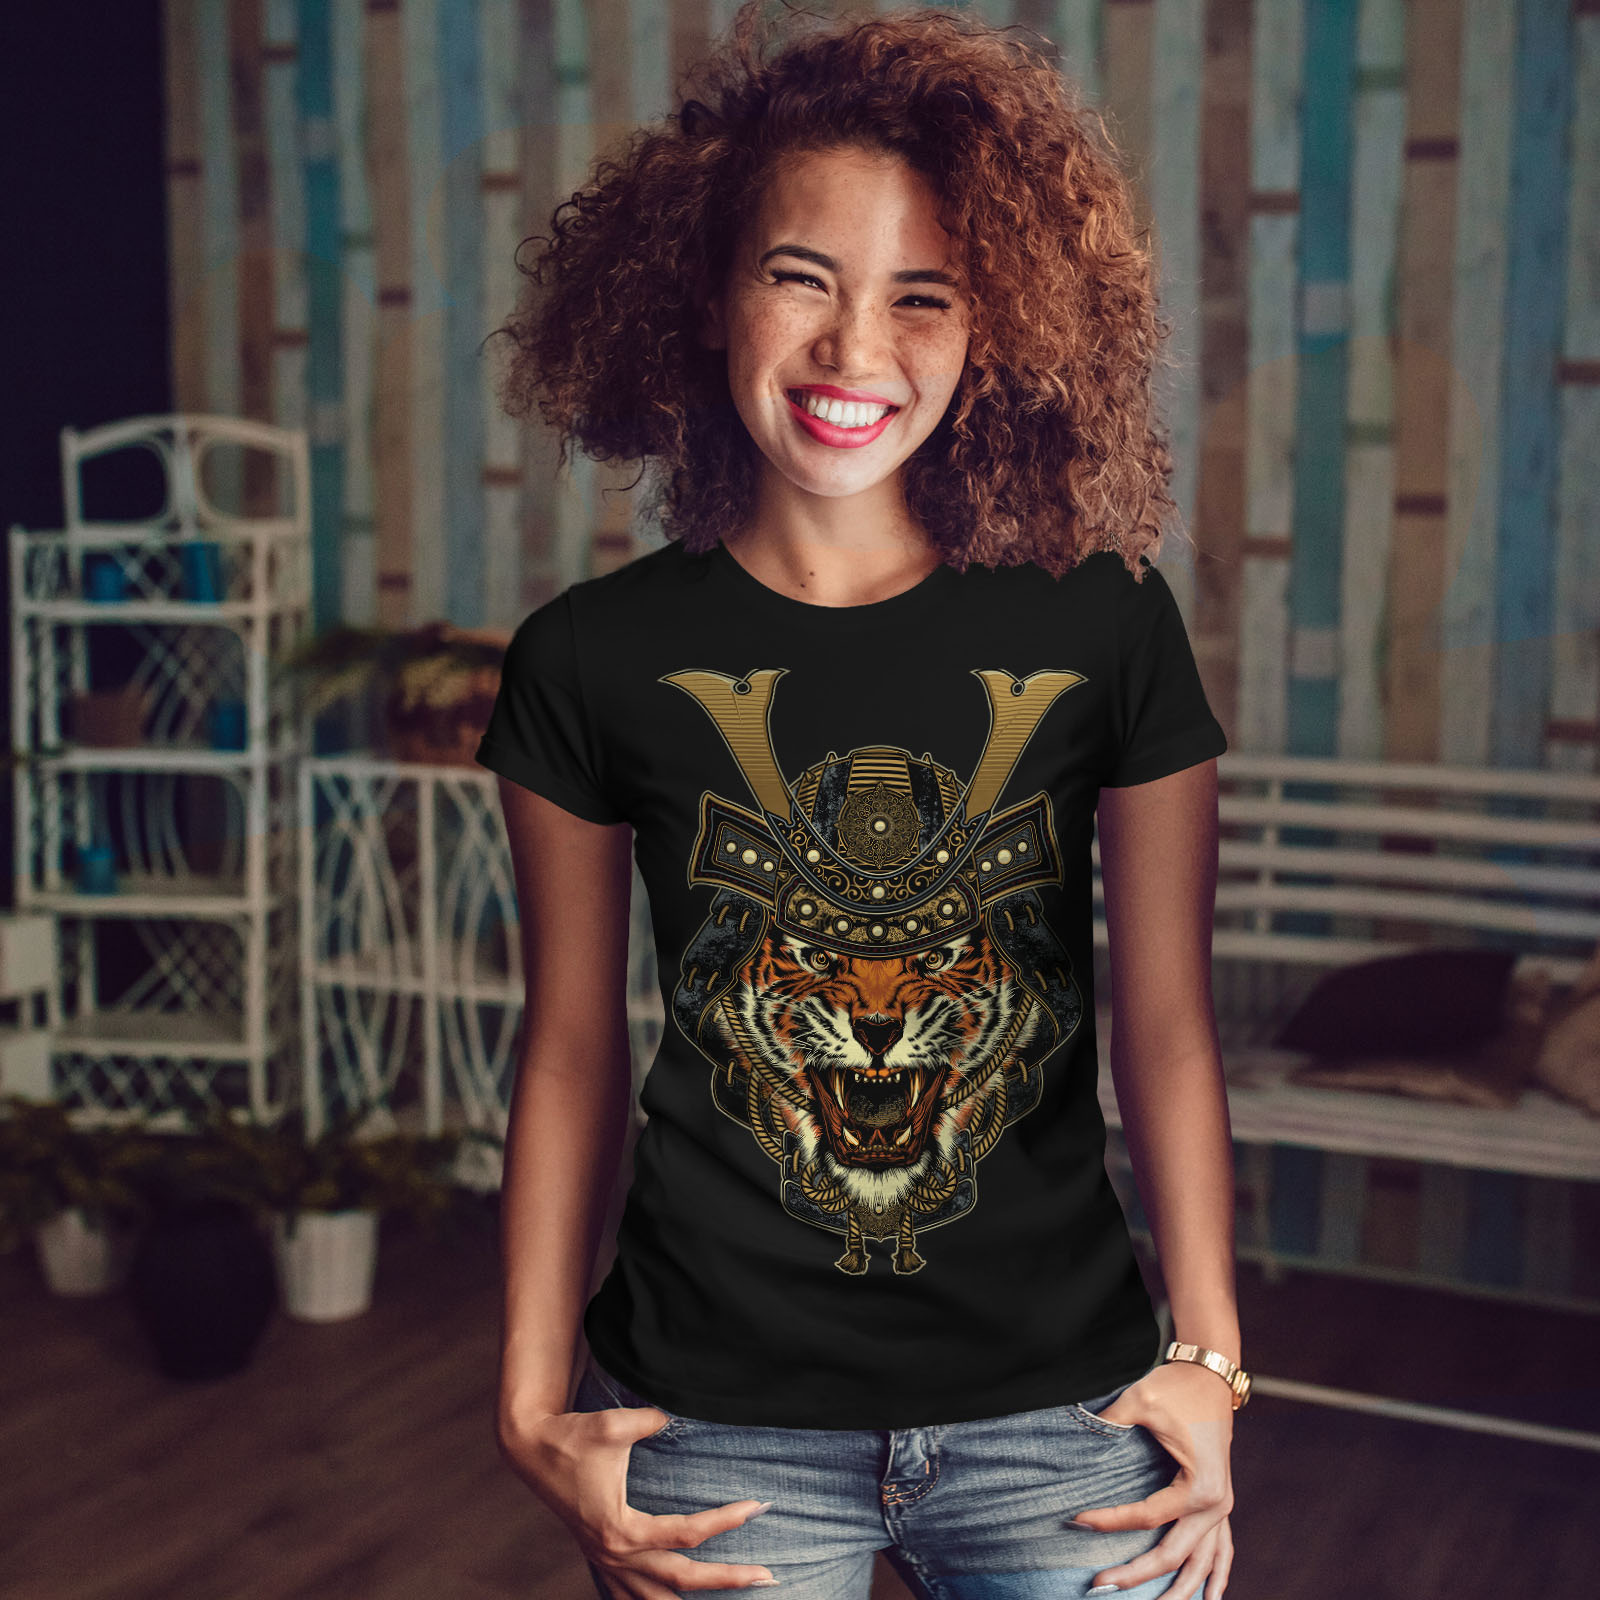 Wellcoda guerrier tigre Cool Animal T-shirt Imprimé femme, 0 Casual Design Imprimé T-shirt Tee 6875b2